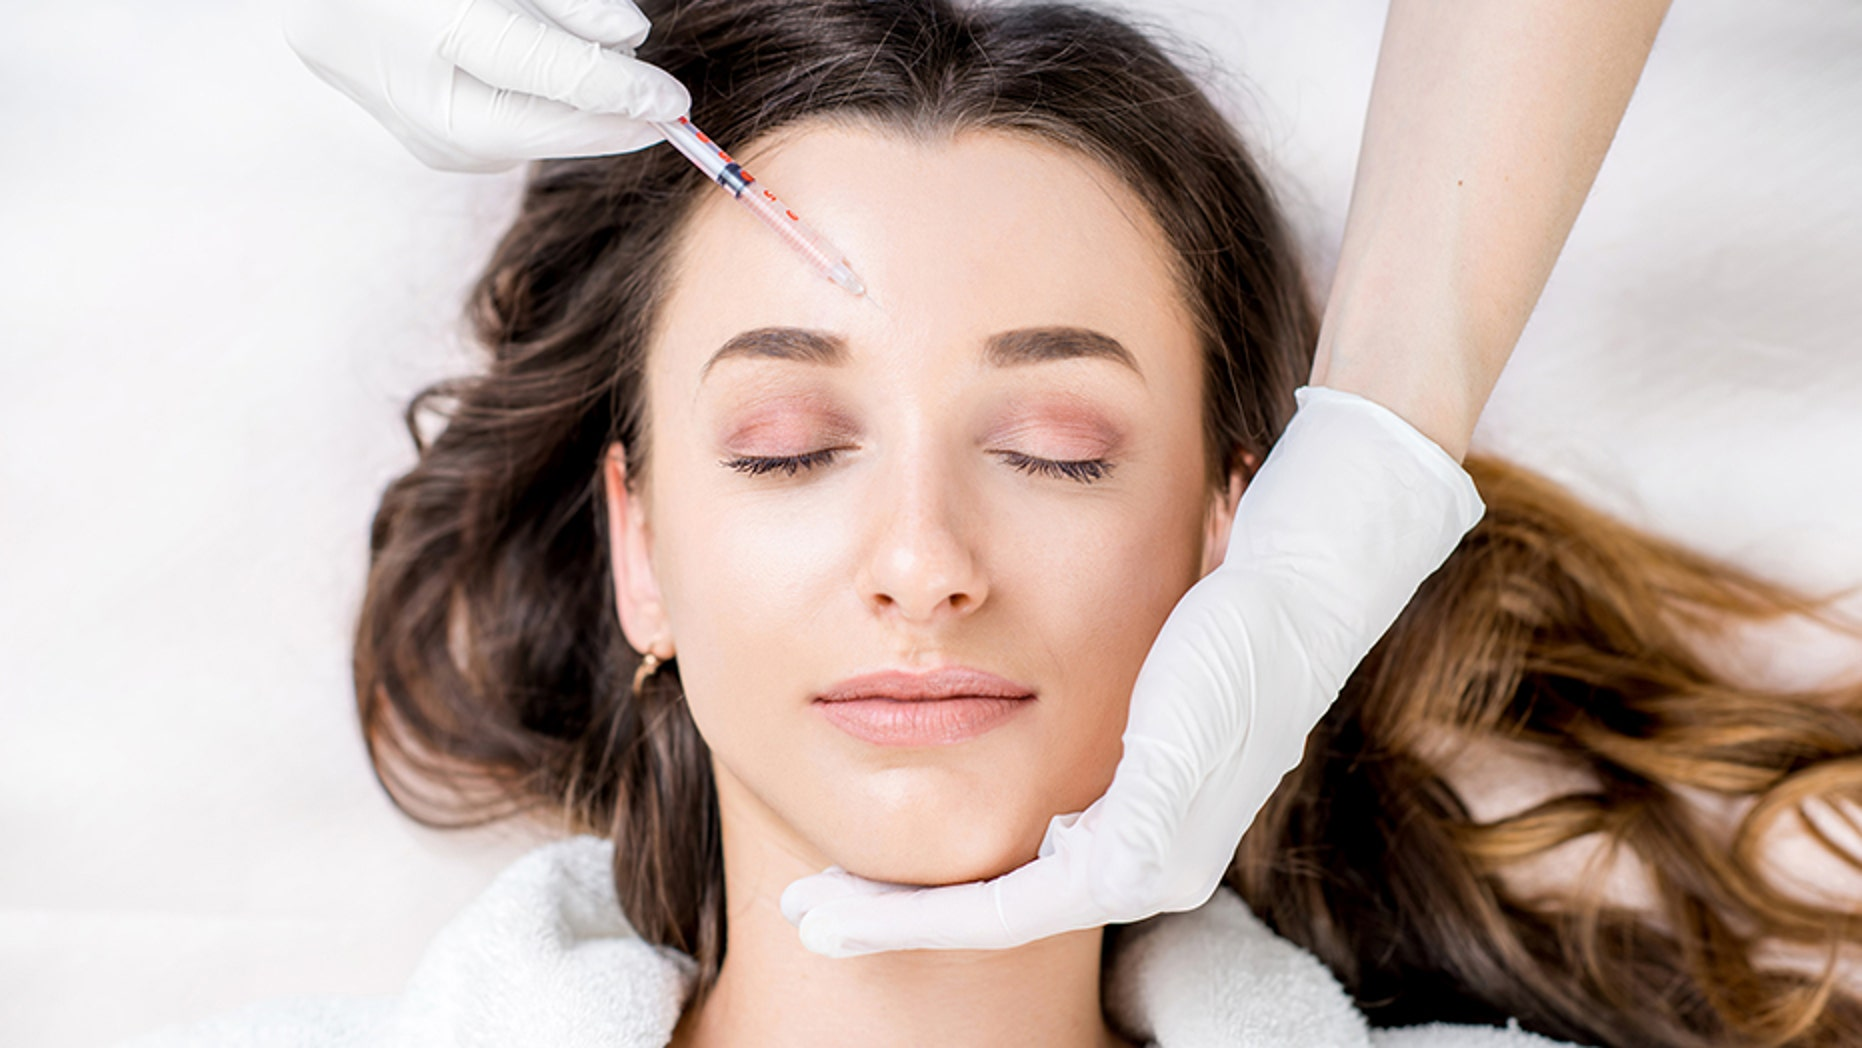 There's a rising trend among young people in their 20s and 30s to get preventative Botox.